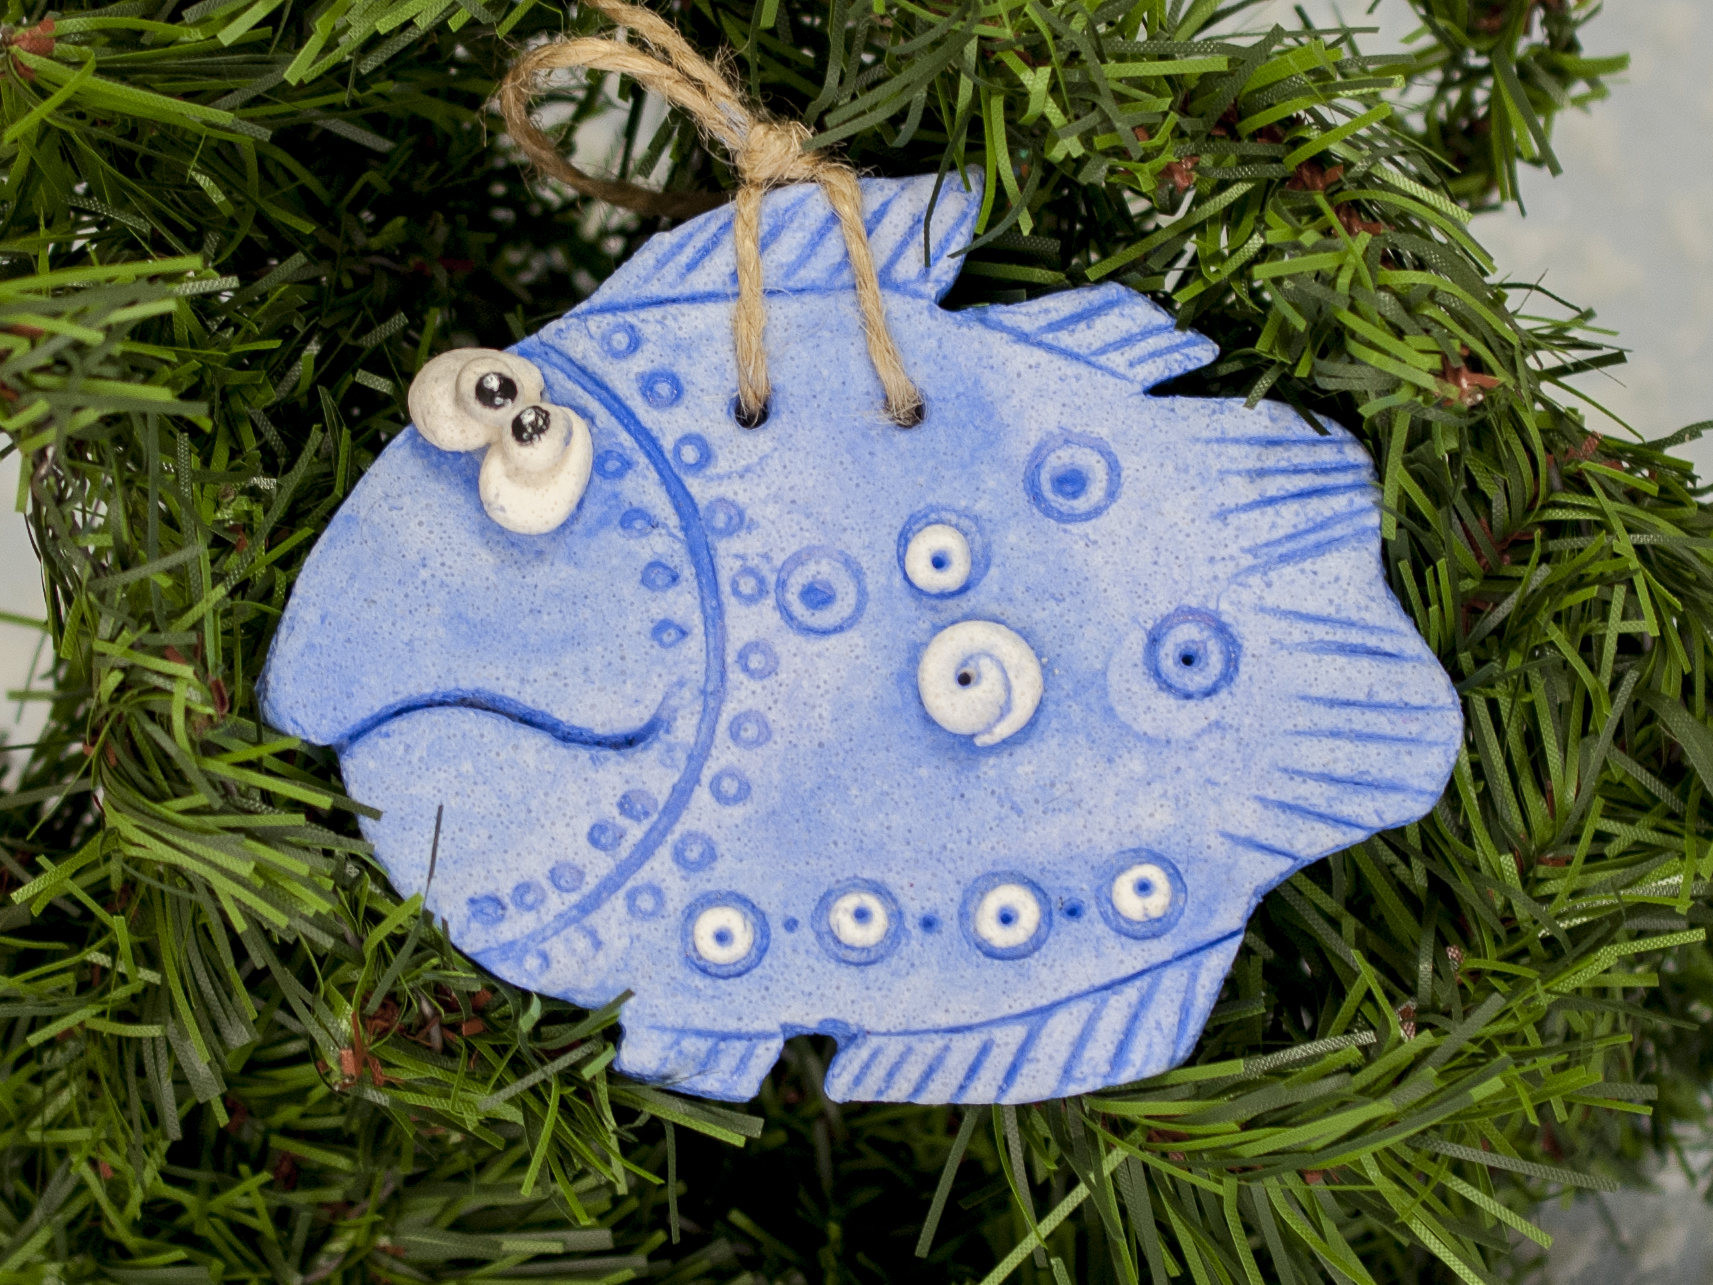 Funny Christmas ornaments Best Of Wall Decor Funny Christmas Tree ornament Custom Christmas Of Charming 48 Images Funny Christmas ornaments